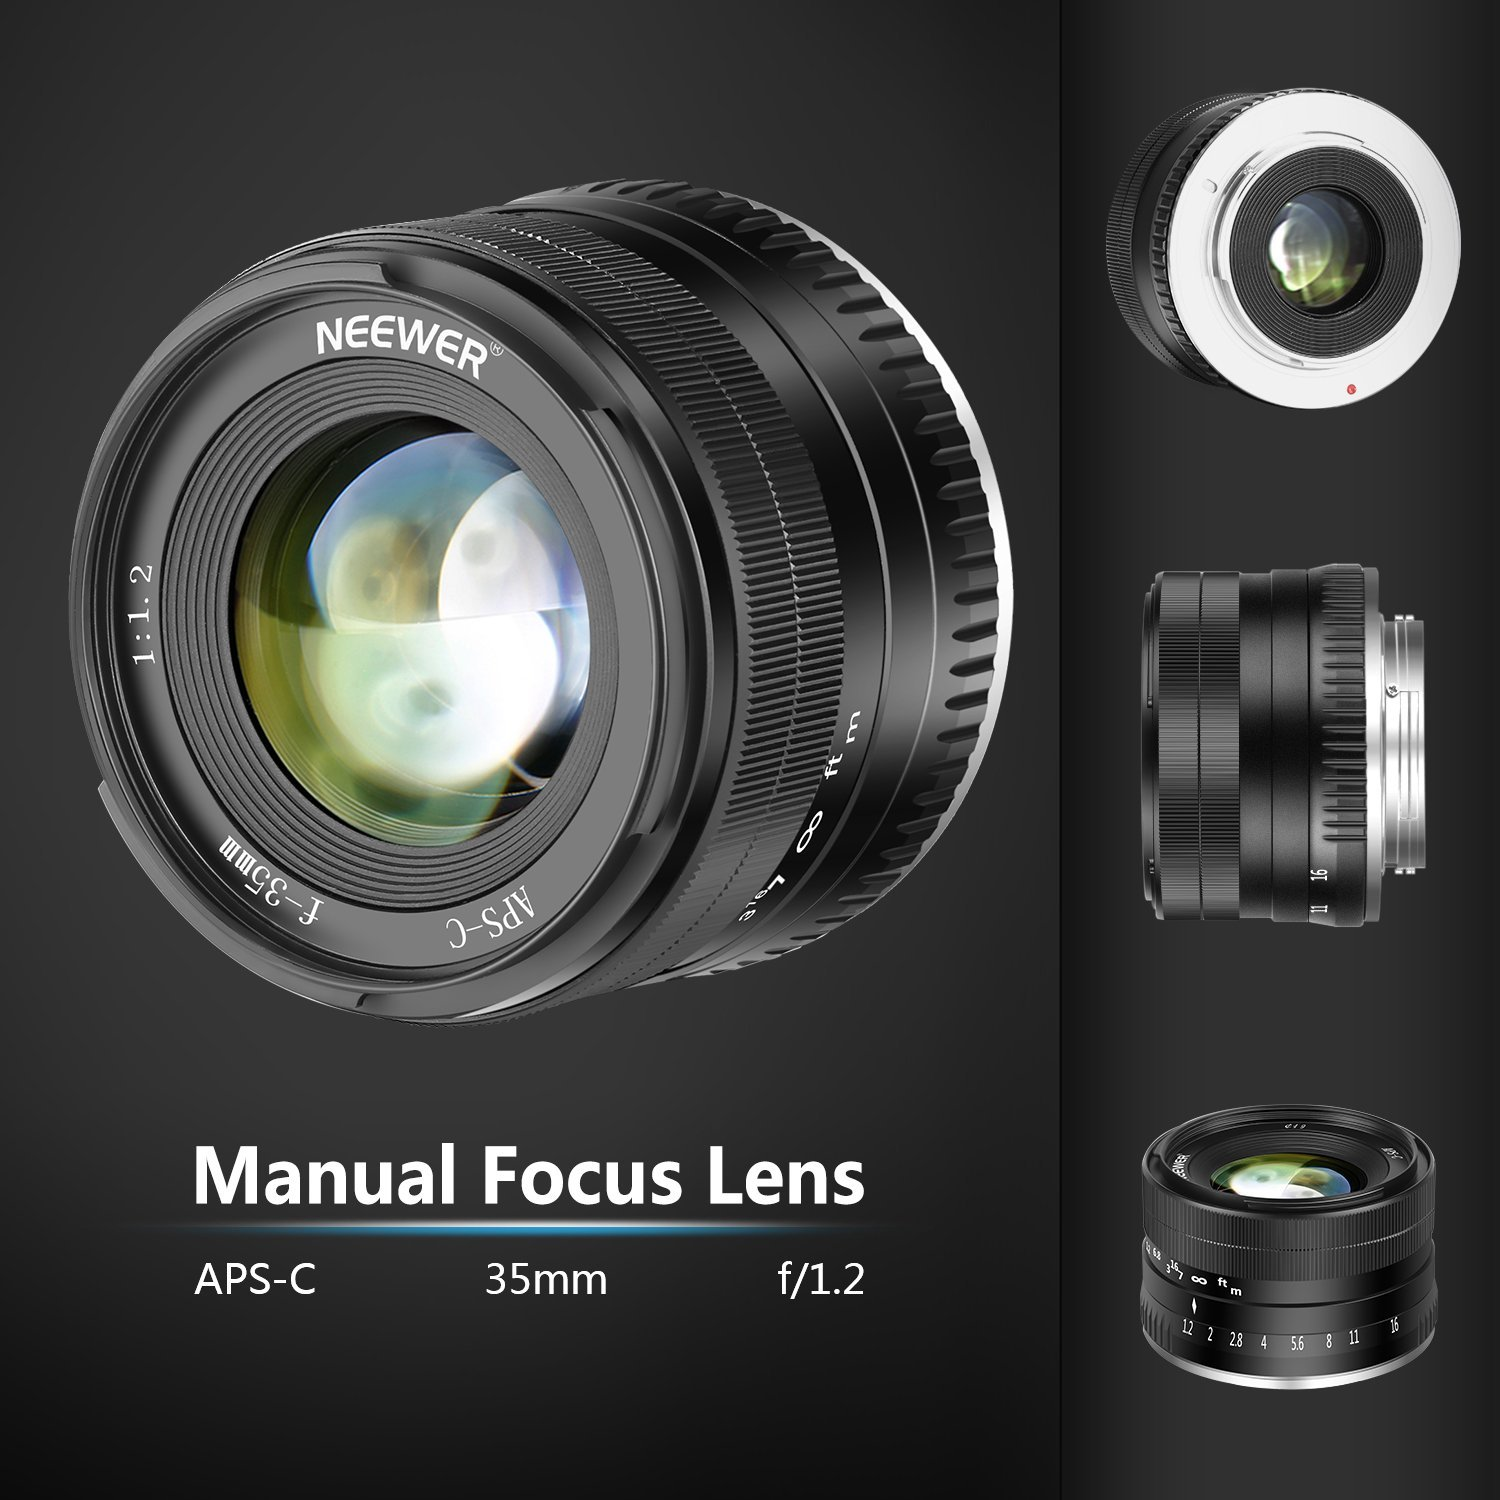 New Neewer 35mm F 1 2 Mirrorless Lens For Fuji X And Sony